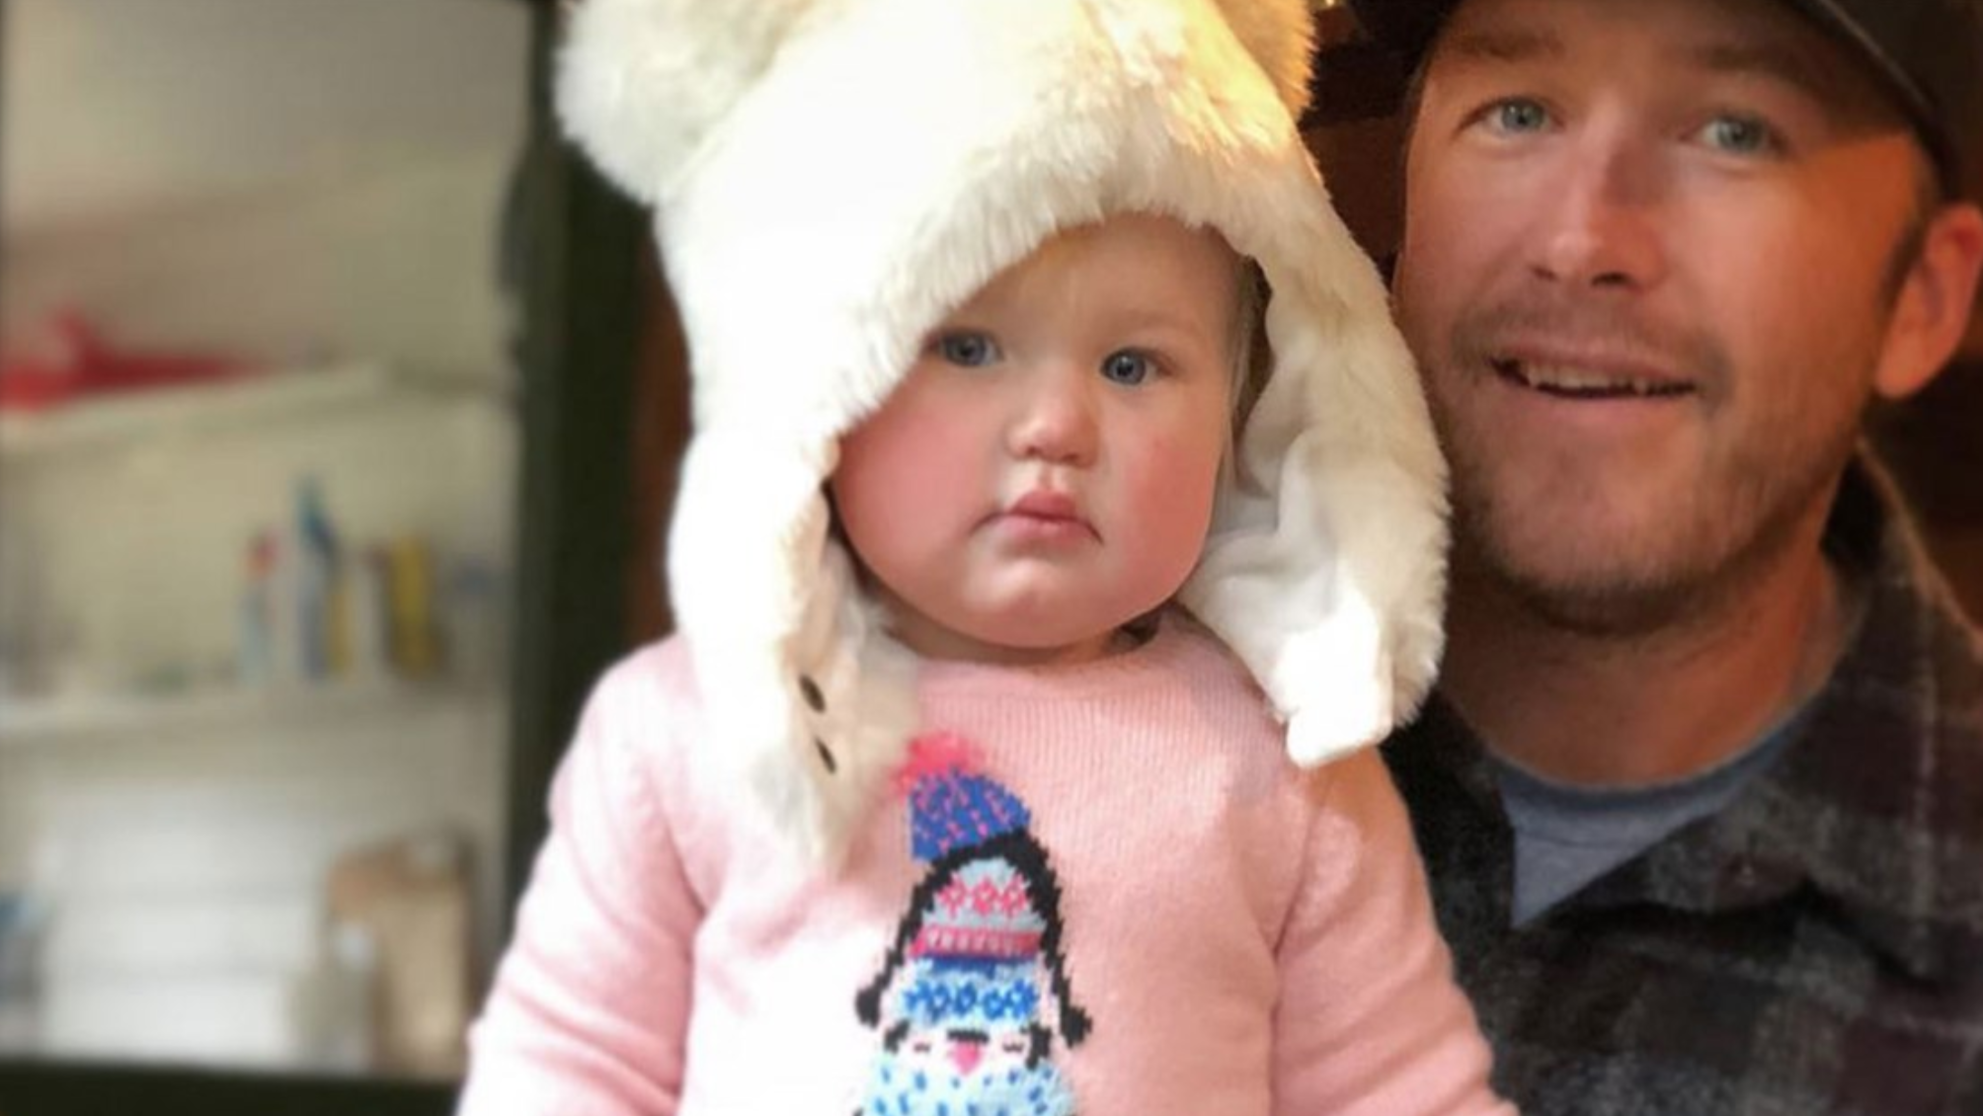 Olympian Bode Miller's 19-Month-Old Daughter Dies After Drowning in Pool: 'We Are Beyond Devastated'